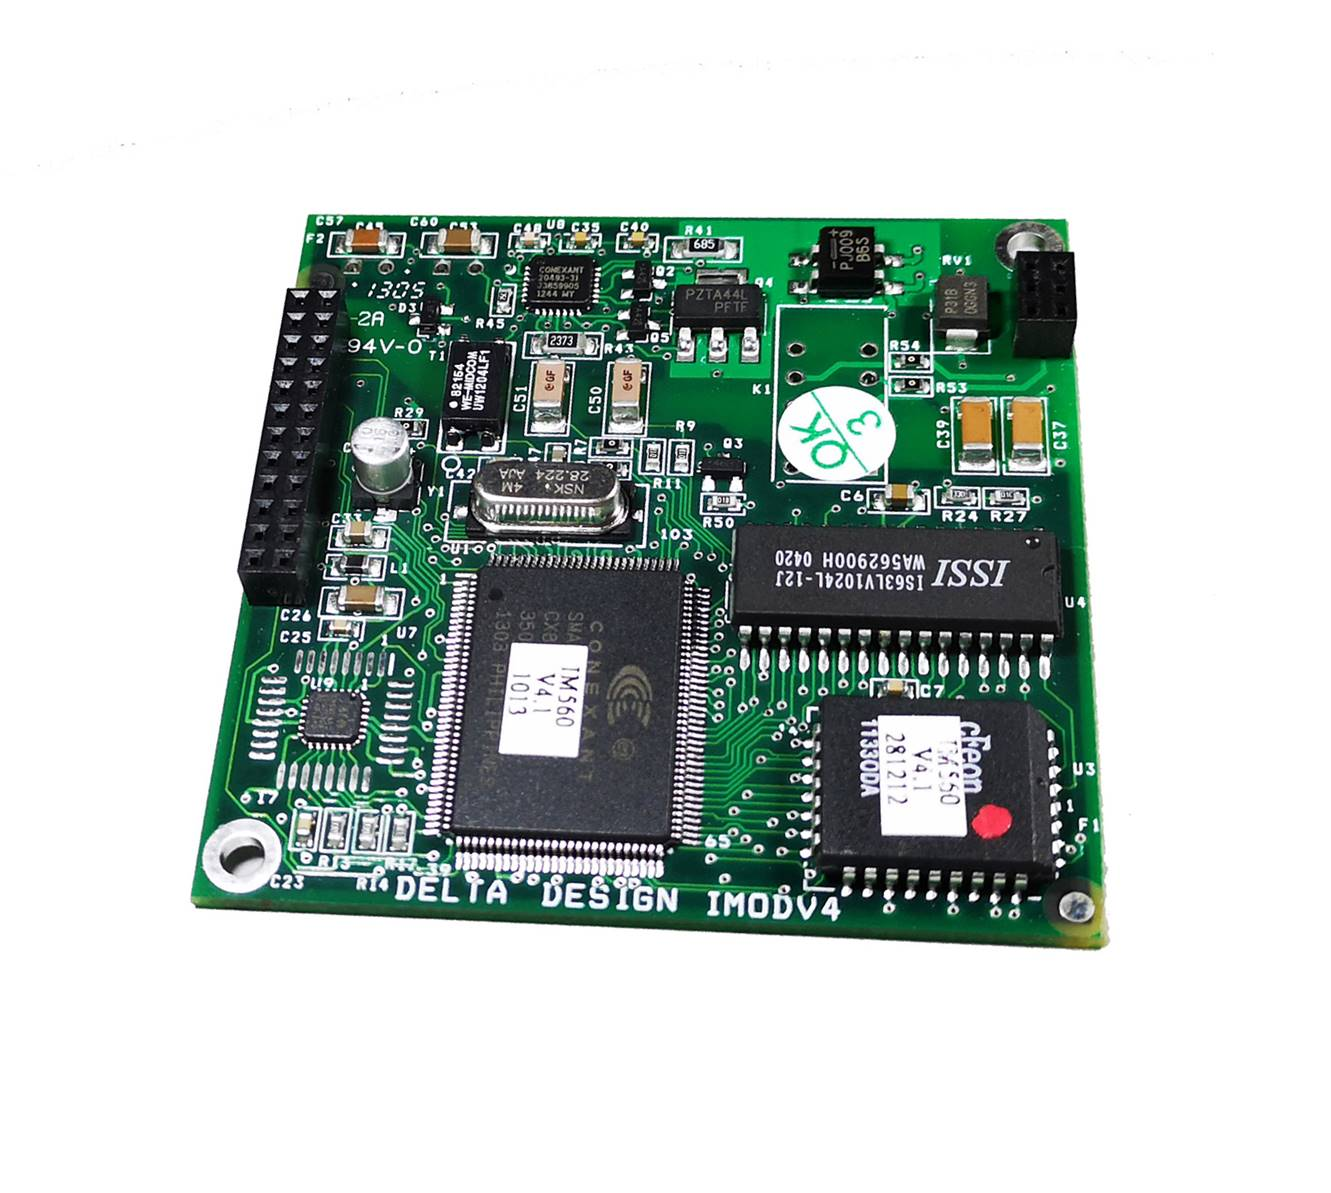 PSTN V92 Modem Module The Development Of I Modules And Other Embedded Applications Was One Most Important Activities Bausch Datacom